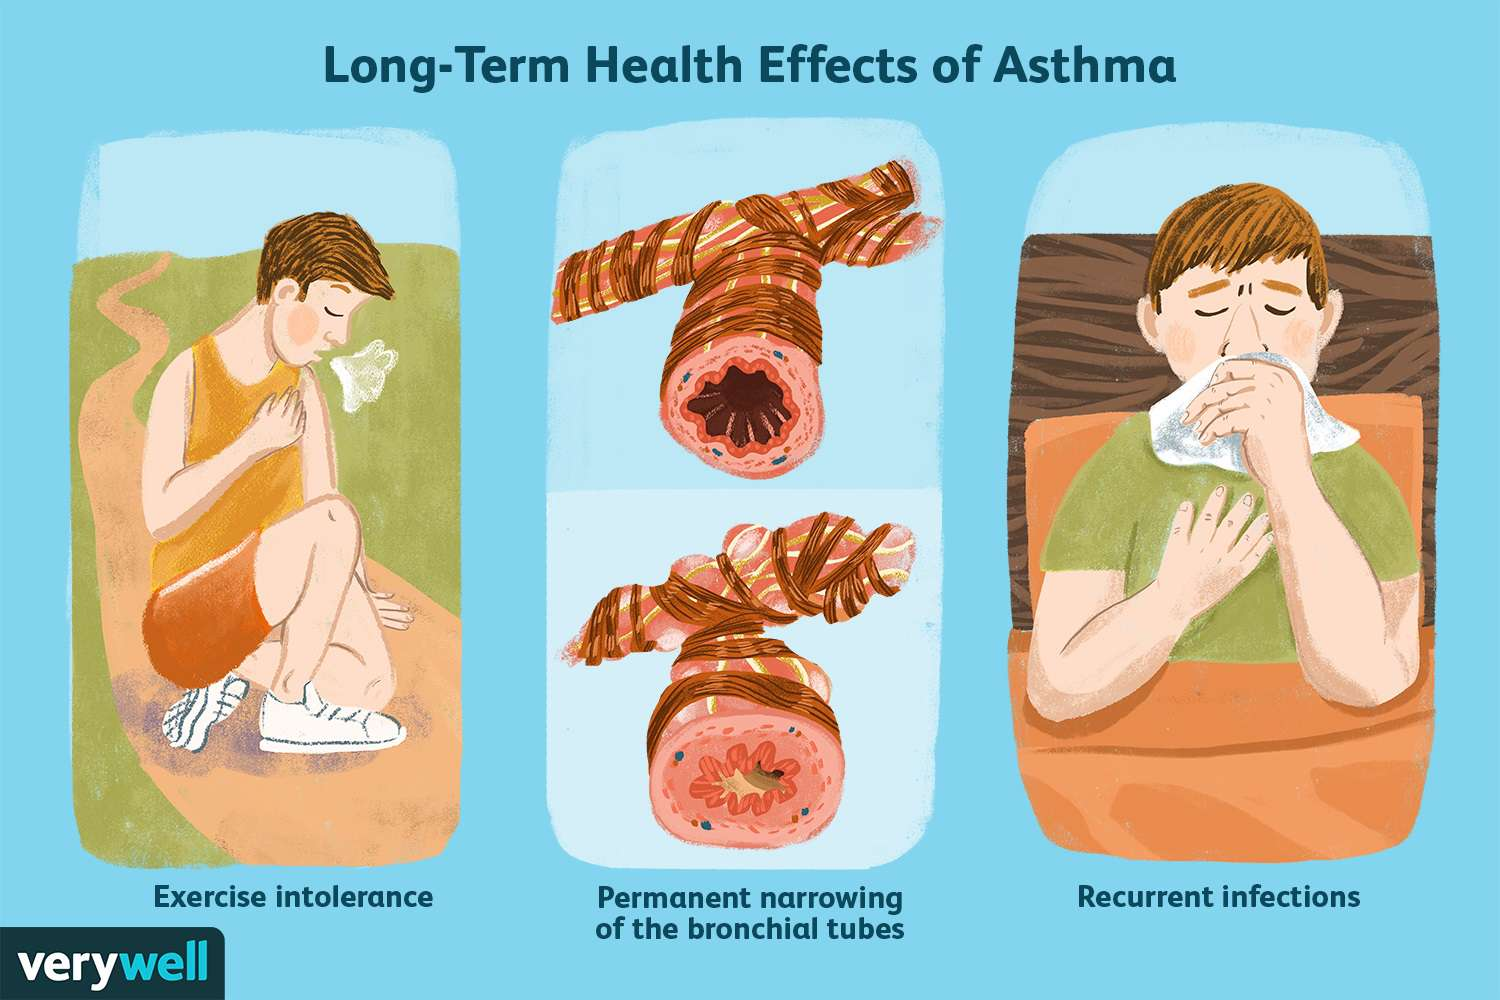 Long-Term Health Effects of Asthma